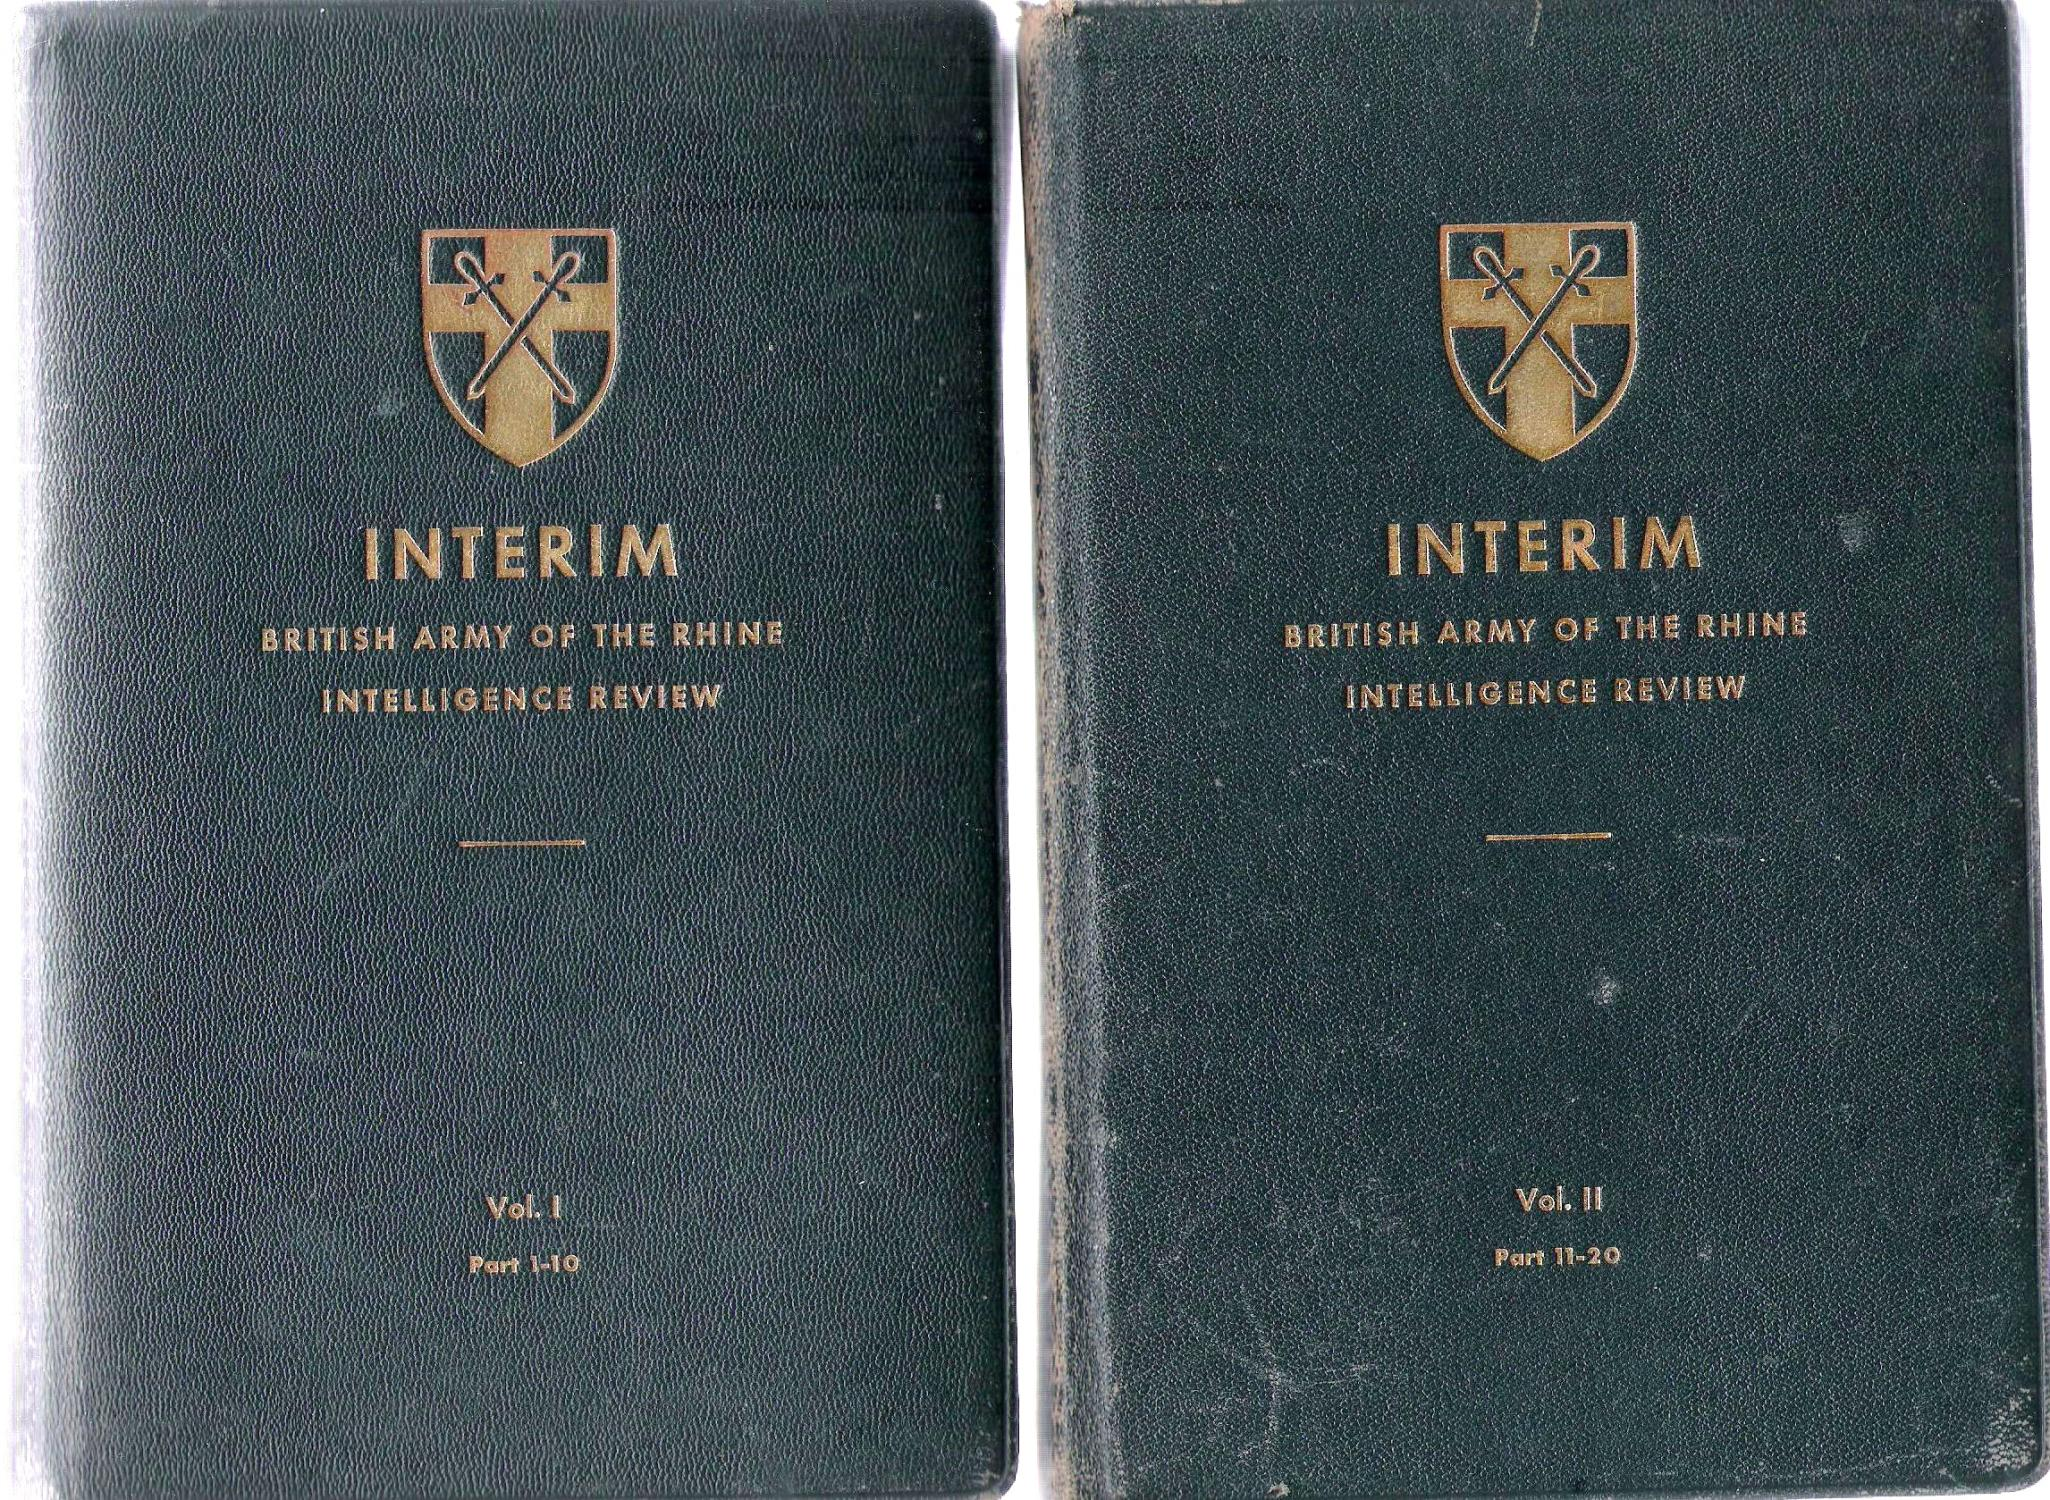 Interim British Army of the Rhine Intelligence Review (New Series). 2 vols. Nos.1-20, ? 1945 - April 1946